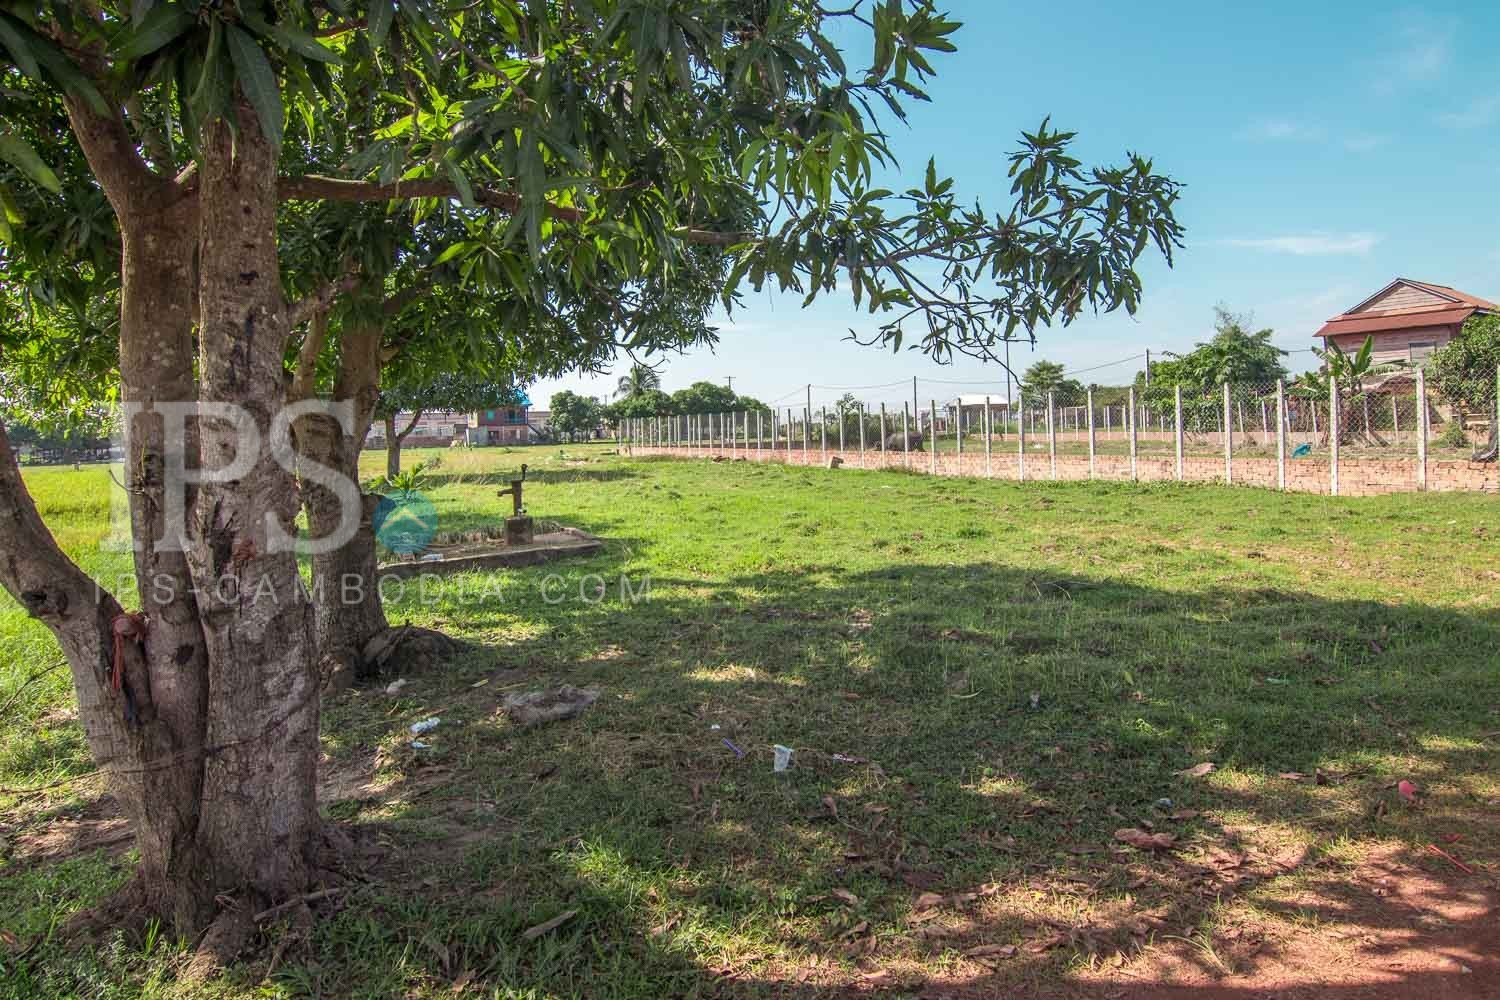 685 sq.m. Land For Sale - Bakong District, Siem Reap